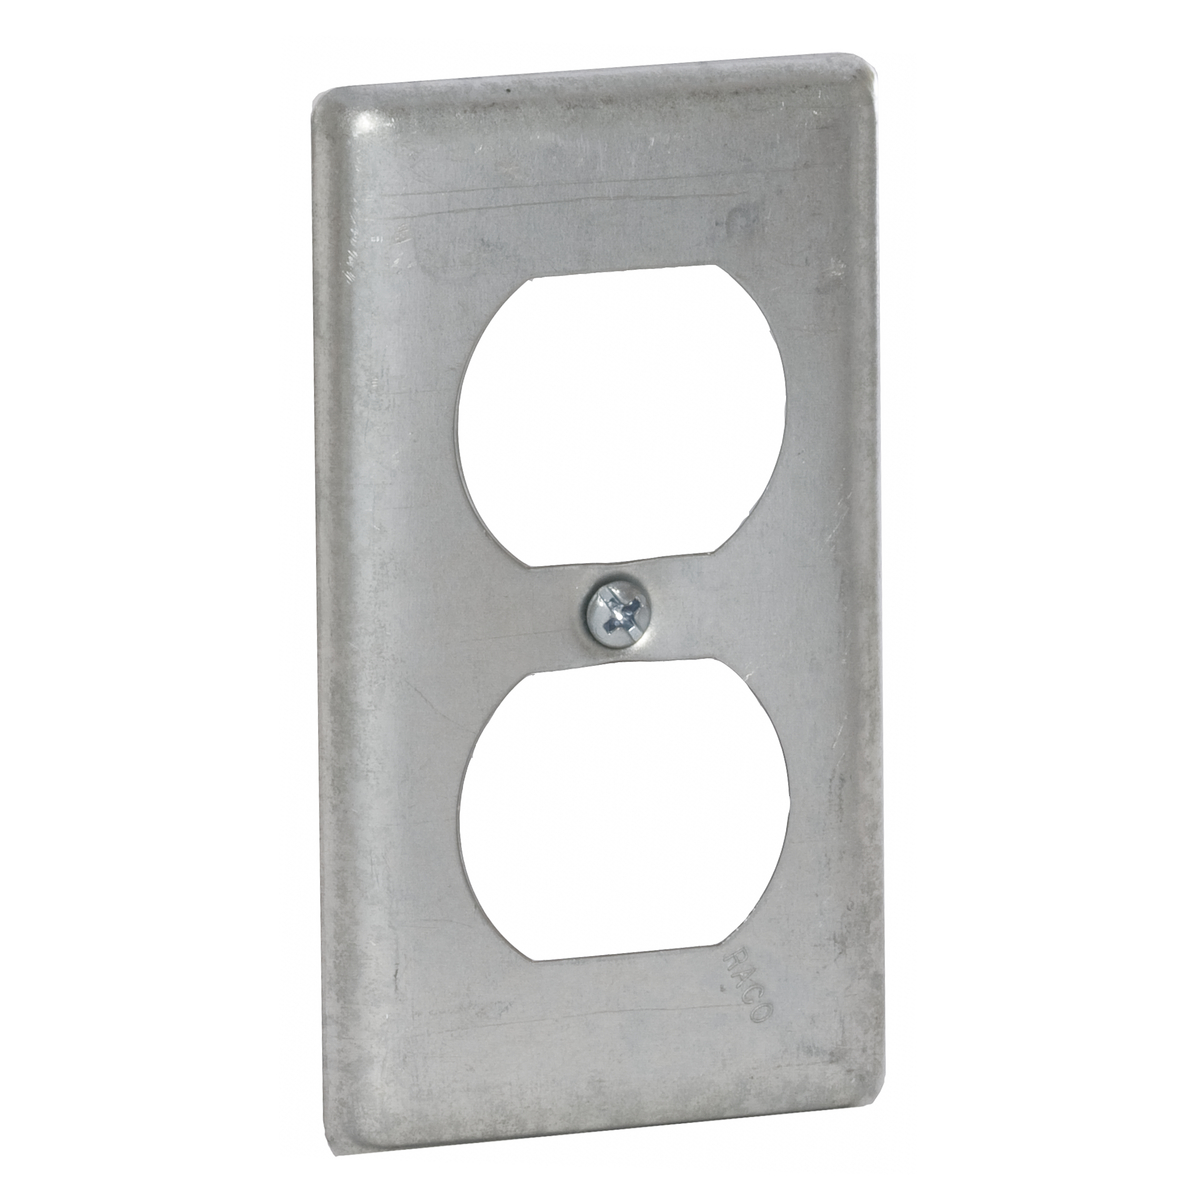 Electrical Box Covers (Utility Box Surface Cover - Steel)